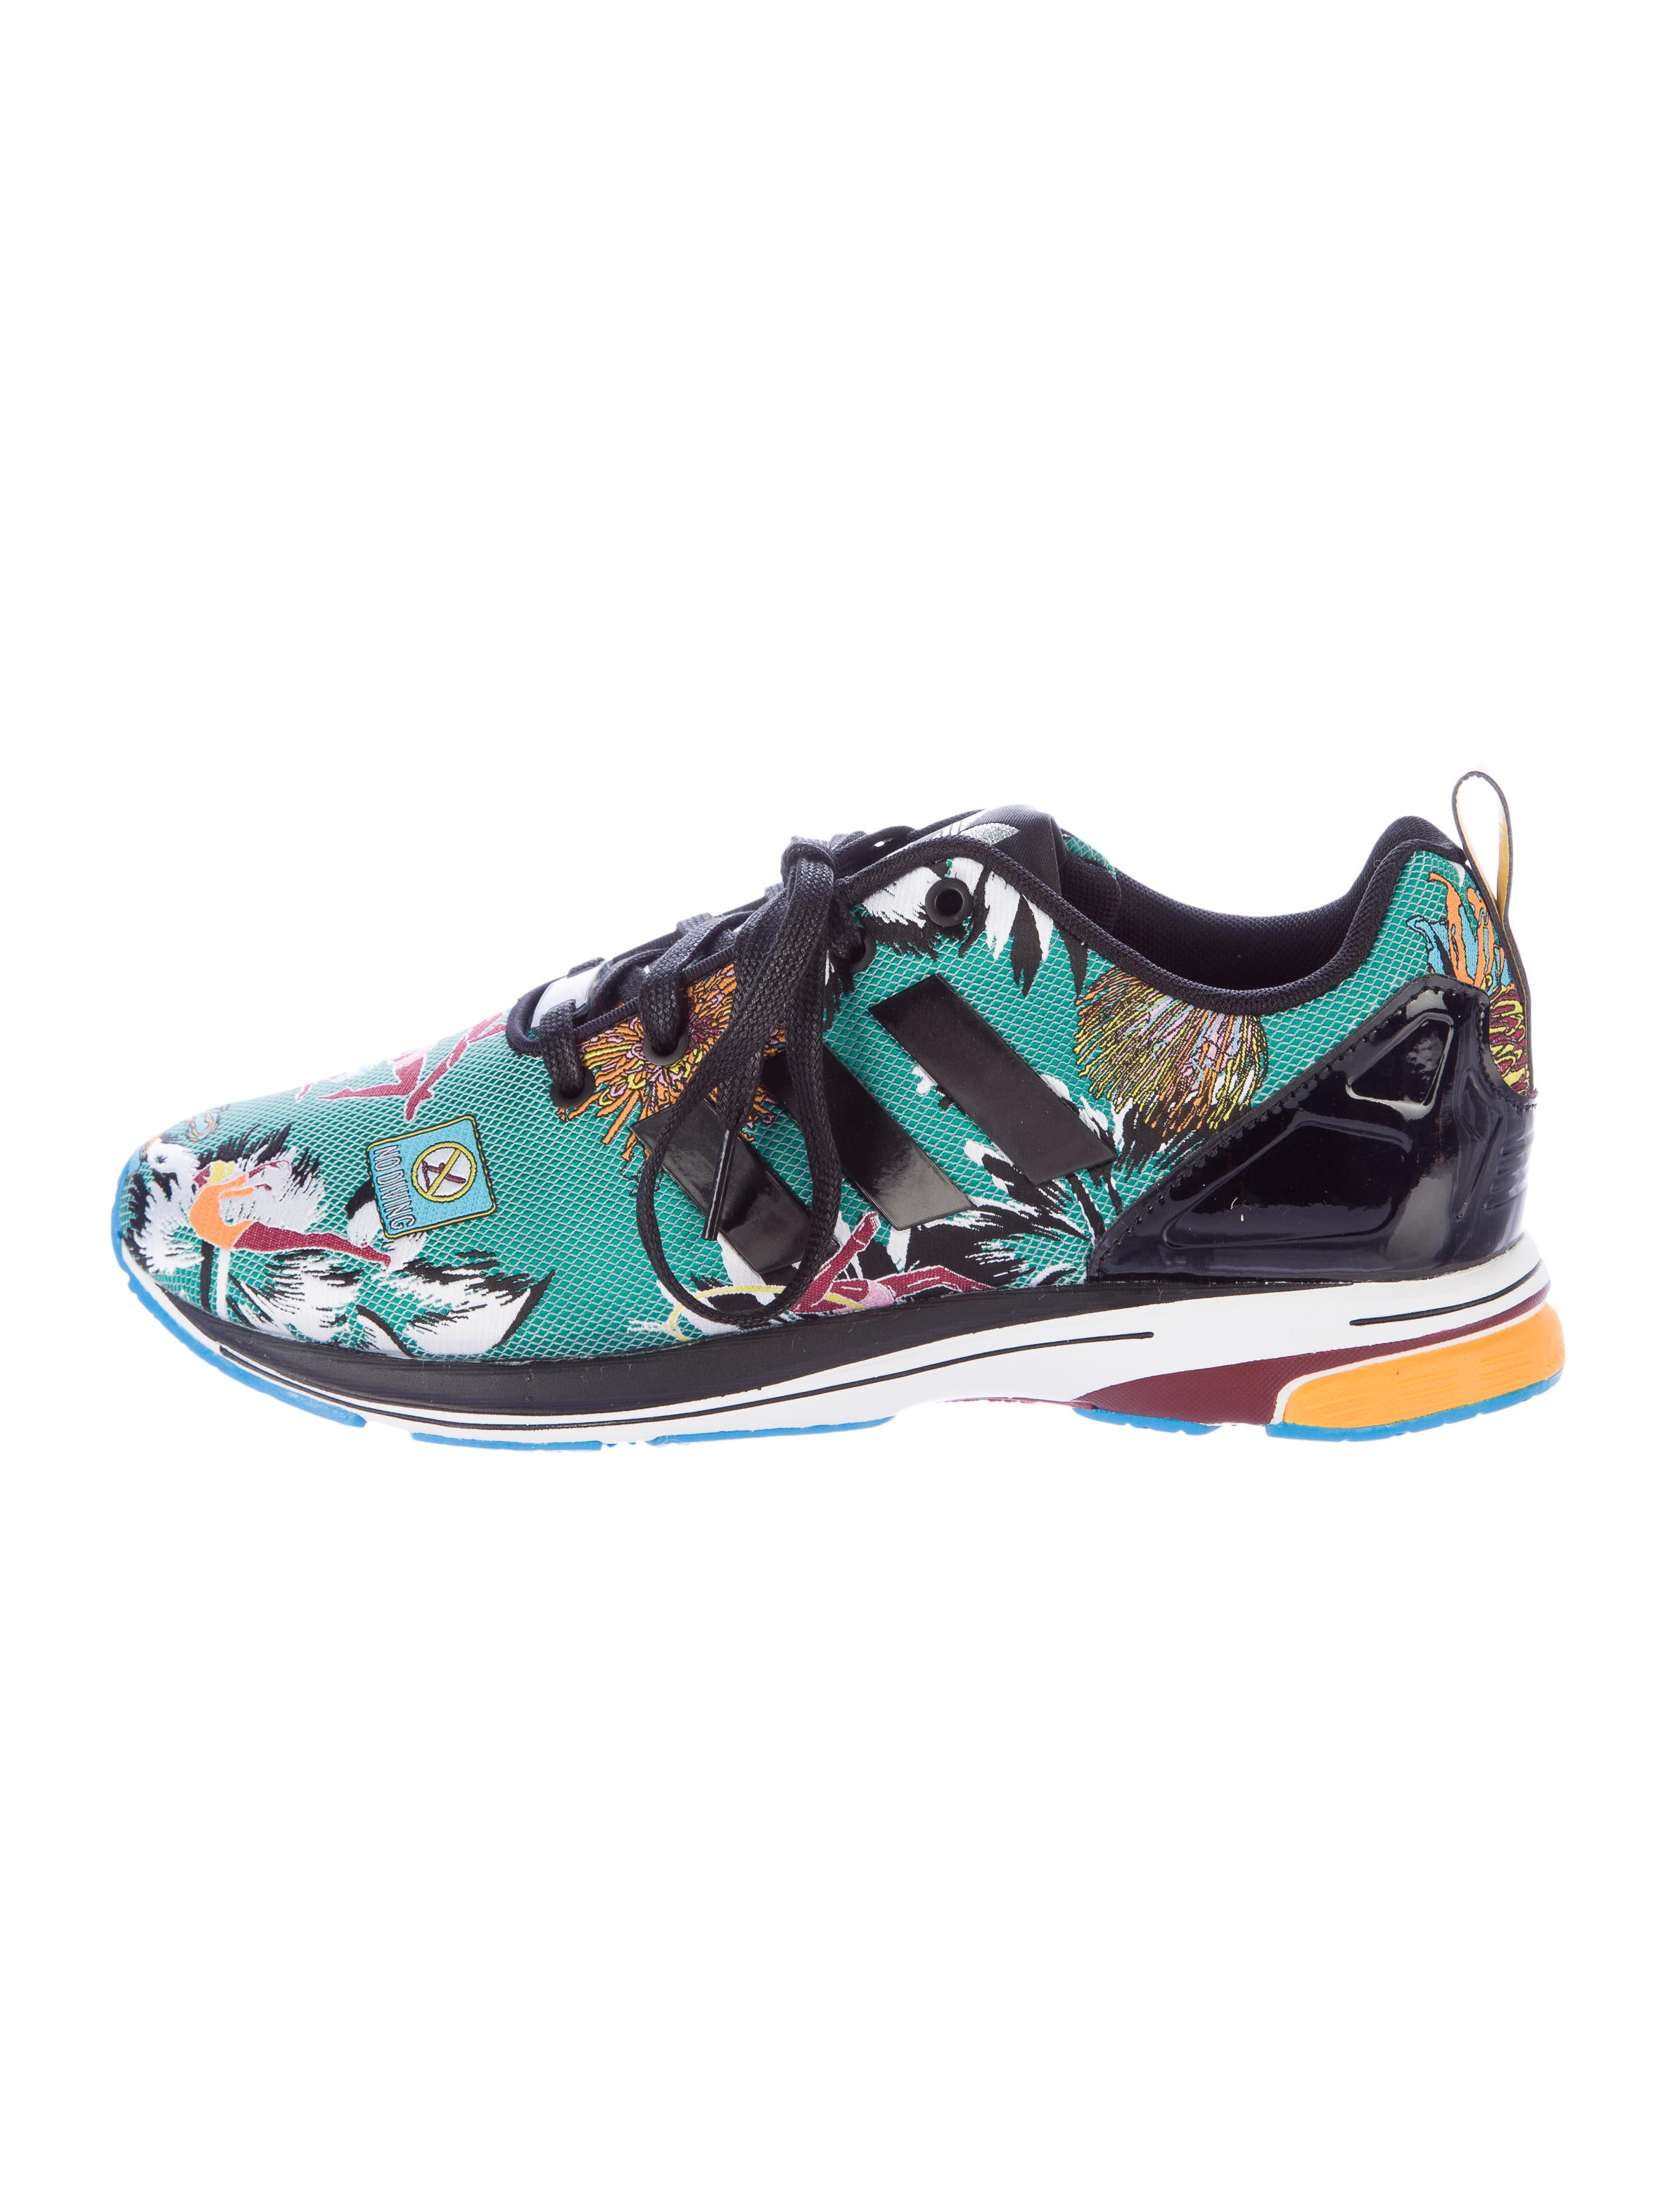 low priced f6ce0 ea495 Mary Katrantzou x Adidas MK ZX Flux Tech Sneakers w Tags